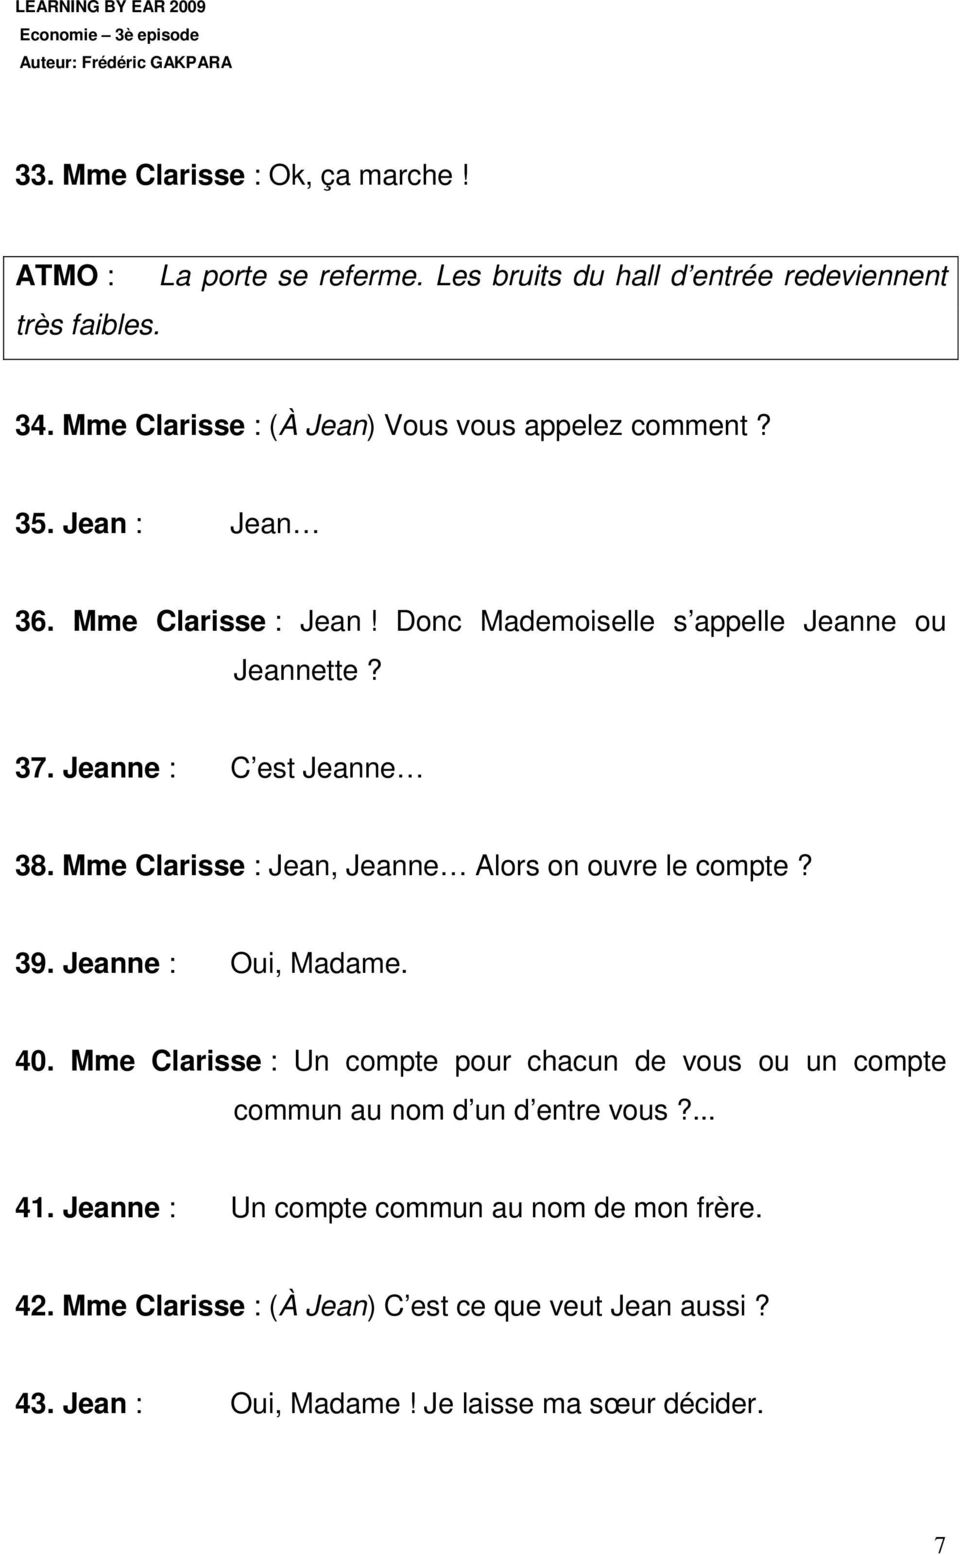 Jeanne : C est Jeanne 38. Mme Clarisse : Jean, Jeanne Alors on ouvre le compte? 39. Jeanne : Oui, Madame. 40.